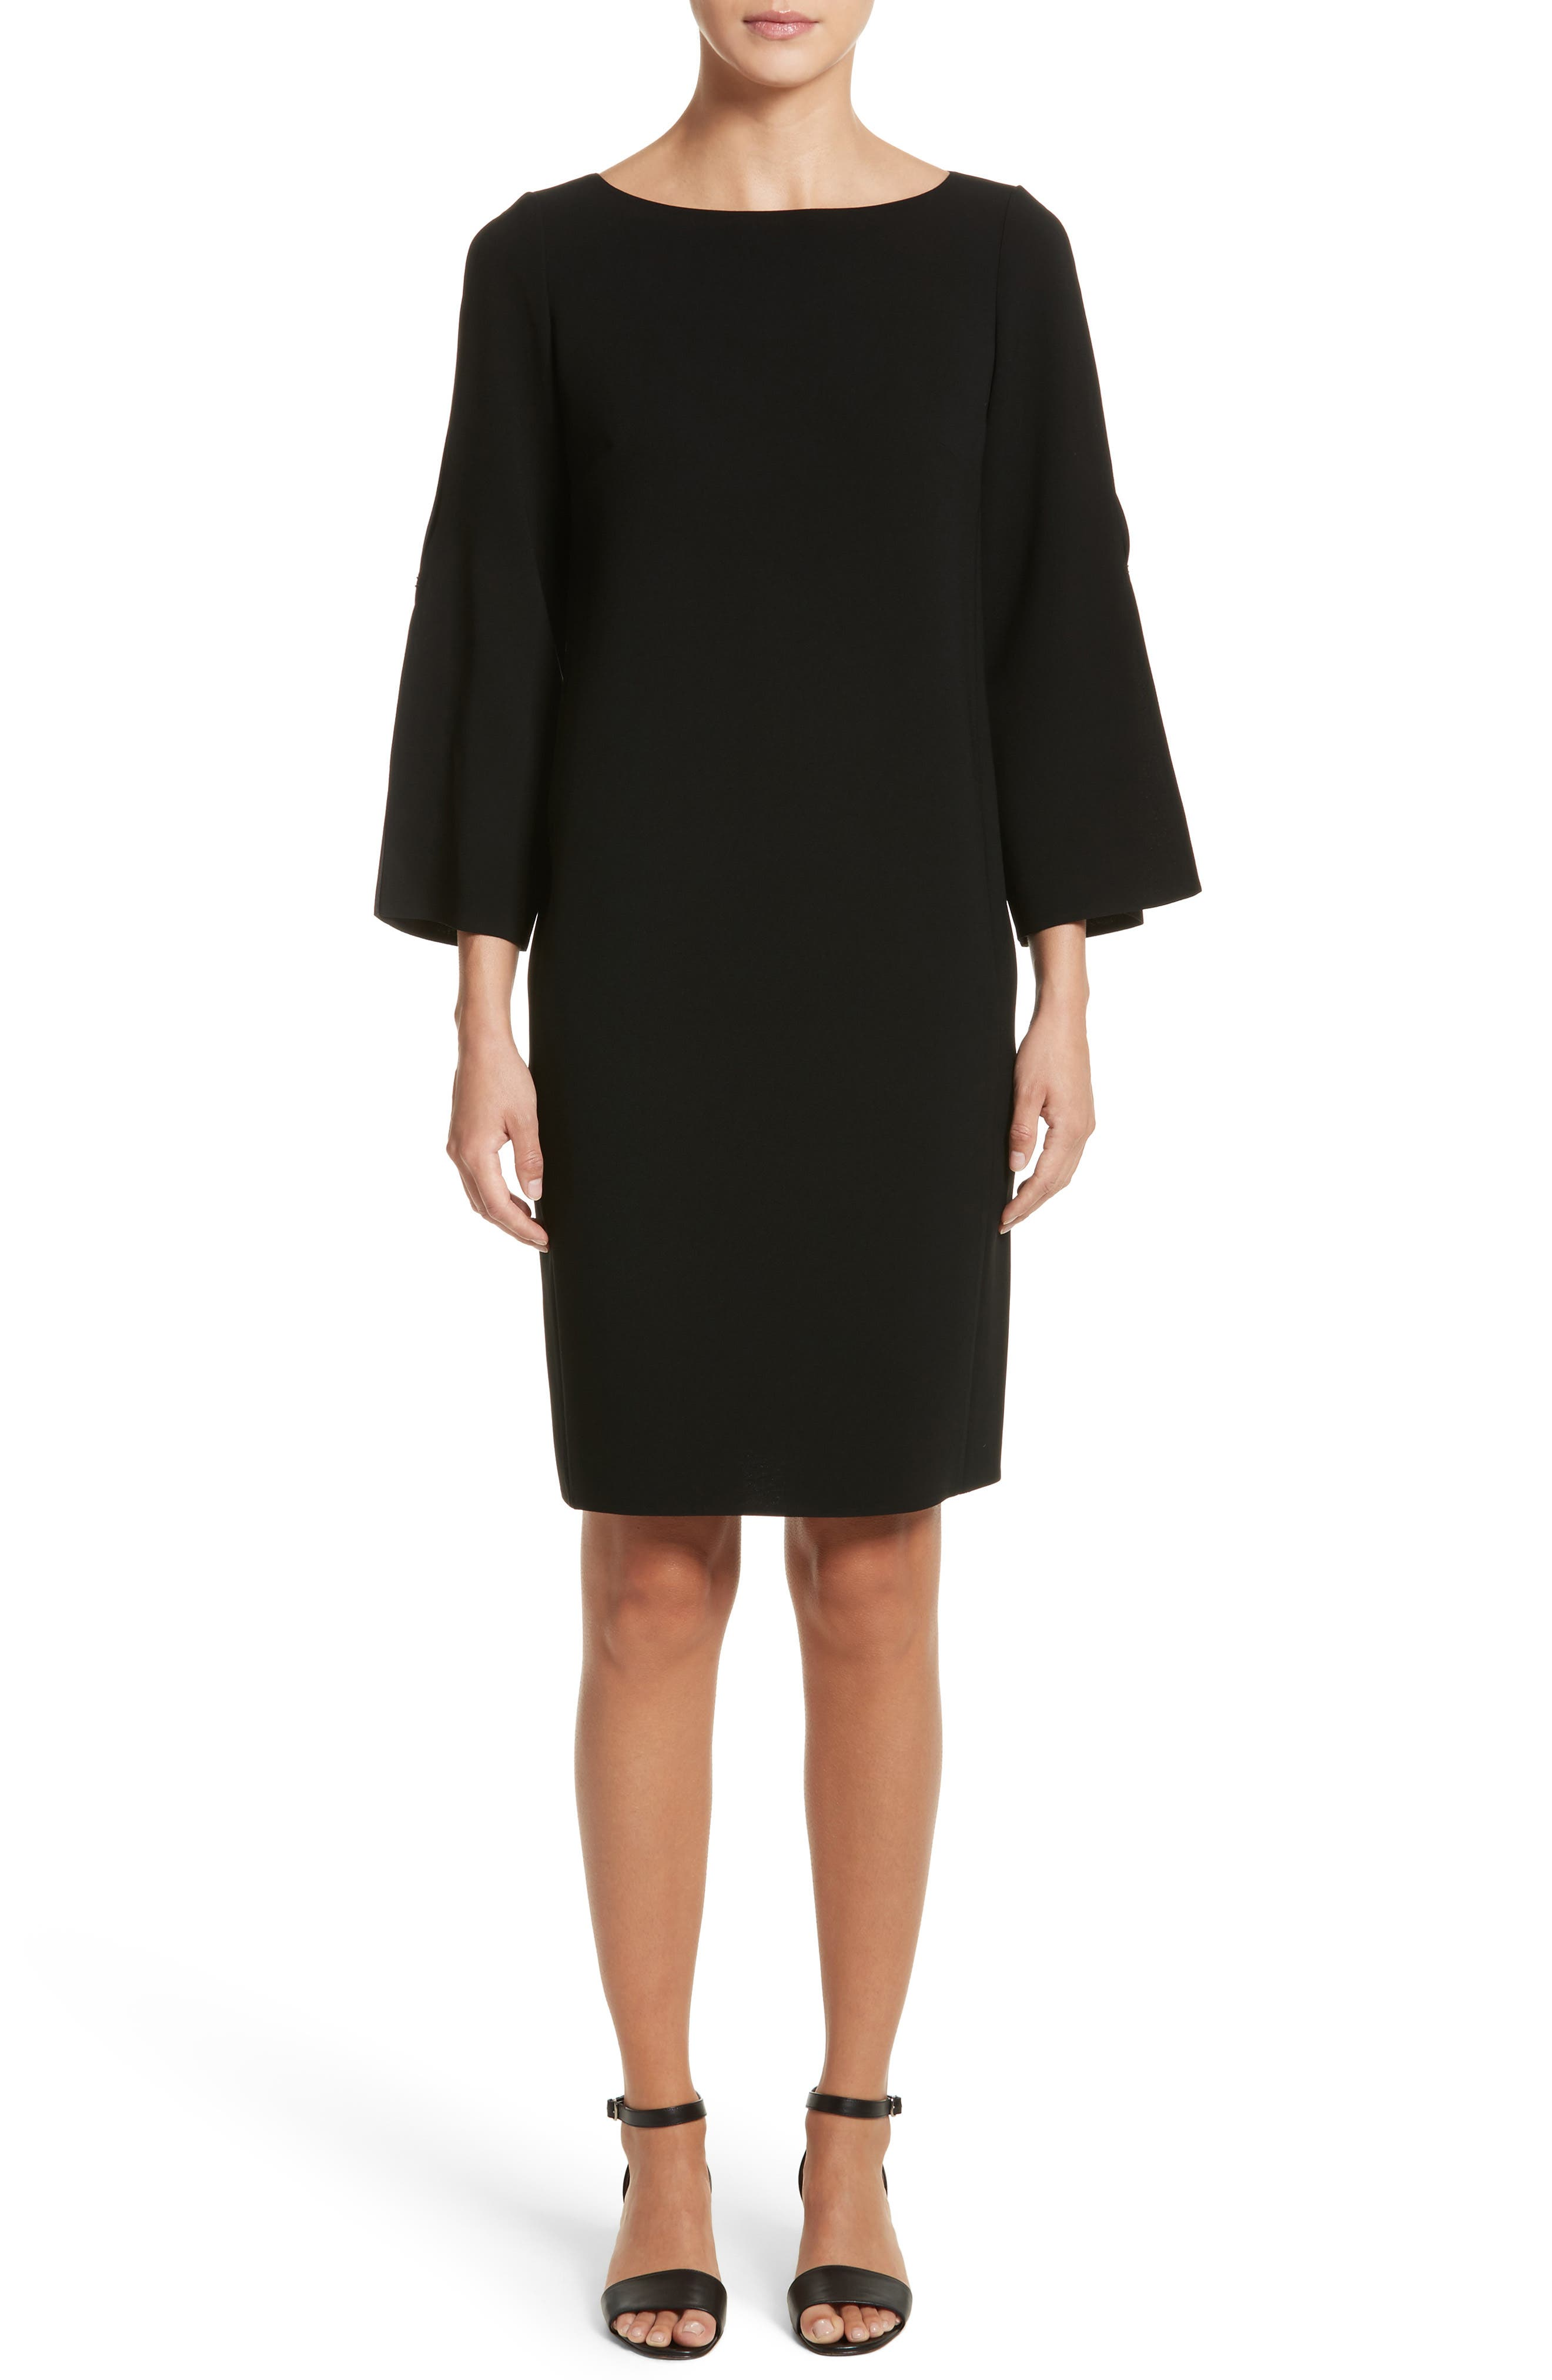 LAFAYETTE 148 NEW YORK,                             Candace Finesse Crepe Shift Dress,                             Main thumbnail 1, color,                             001